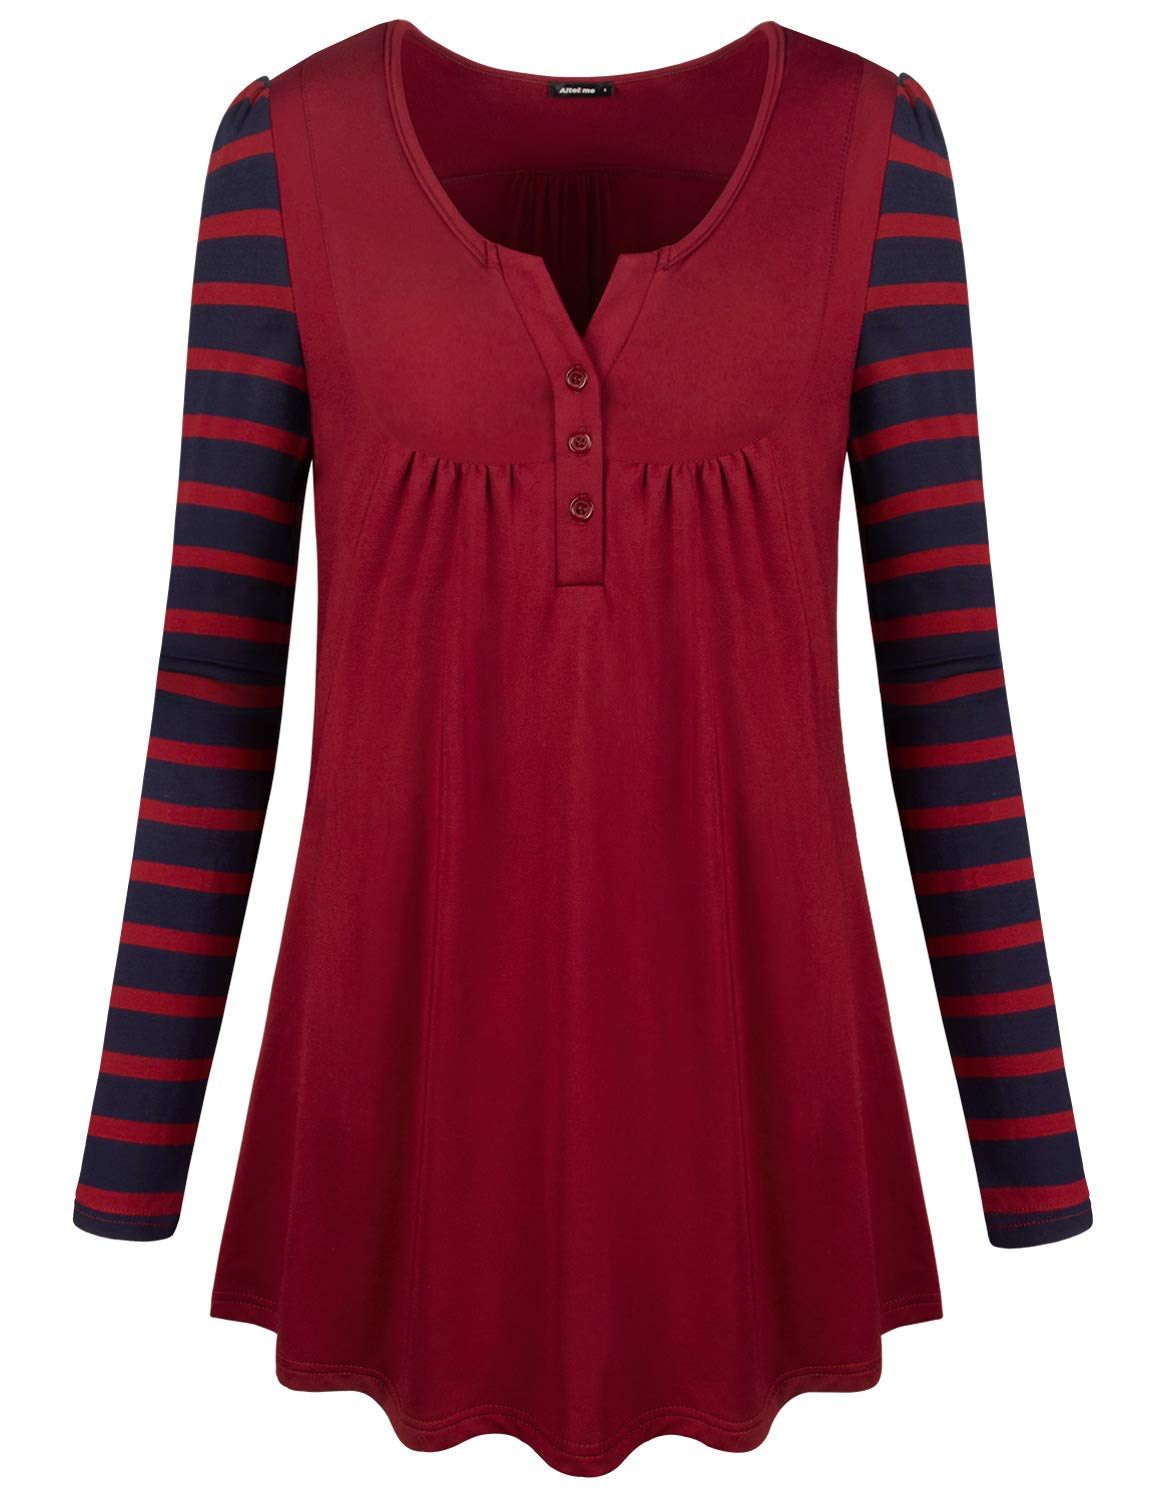 Altelime Dressy Tunic Tops For Women Female Shirts And Blouses